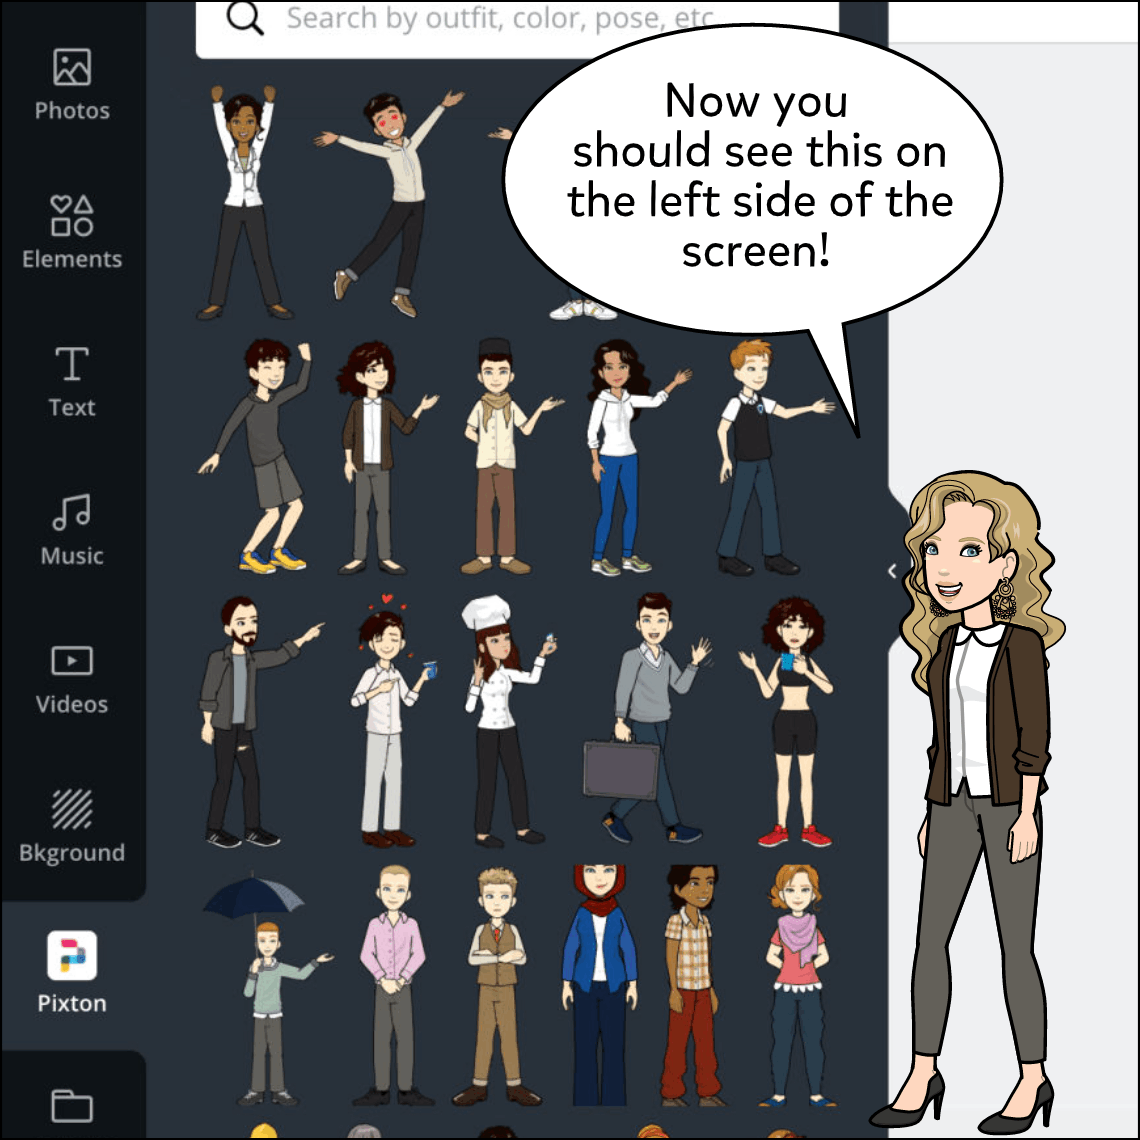 how_to_use_pixton_app_with_canva-007